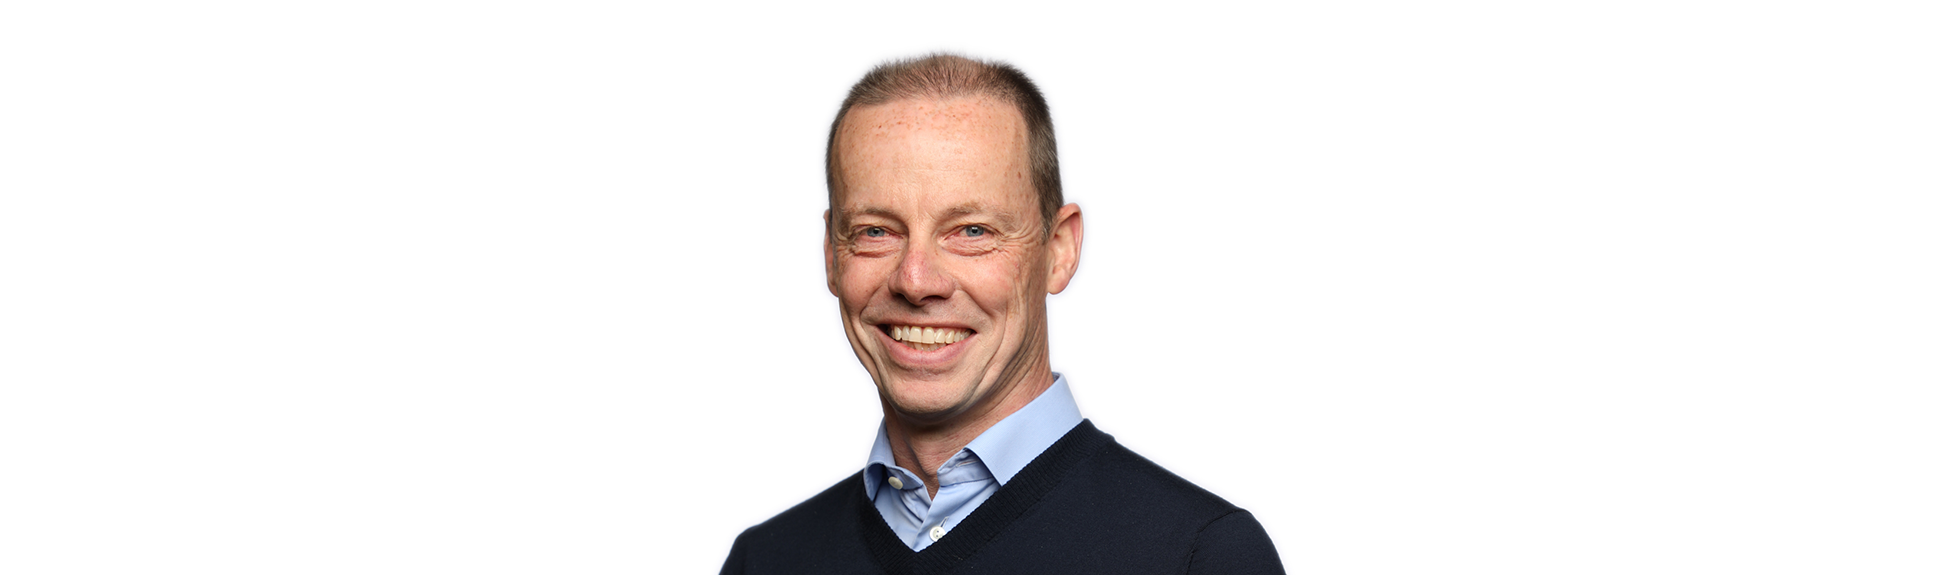 """Small headshot of Executive Vice President & President Mondelēz Europe - Vince Gruber: """"Vince Gruber joined the company (by then, Kraft Foods Austria) in 1989 as Junior Brand Manager for the Milka brand in Austria. Over the following years he progressed through a number of positions of increasing responsibility, being appointed Marketing Manager for Chocolate in 1993, and later Marketing Director in charge of the Coffee & Food brands in 1997.  In 2000, Gruber left the company to join Red Bull Worldwide as General Manager for the start-up businesses, based in Salzburg, Austria, where he had responsibility for Europe and the US. He returned to Mondelēz Europe (then Kraft Foods Europe) in 2007 as Director of the Chocolate category for Germany, Austria, Switzerland and the World Travel Retail business, a position he held until 2010 when he was appointed President Chocolate for Europe. Gruber led the European Chocolate Category until September 2016. From 2016 to the end of 2018 he was in charge of the Western European commercial business (comprised of France, Benelux, Italy, Iberia and Greece) as Area President Western Europe.  As of January 2019, Vince Gruber took over the leadership of the European business as Executive Vice President & President Europe for Mondelēz International and joined the global Leadership Team of the company.  Born in Meran, Italy, Vince Gruber graduated in Business Administration from the Innsbruck University (Austria). He is fluent in English, German and Italian and has previously lived and worked in Italy and Austria. He is now based in Zurich (Switzerland) with his family."""""""